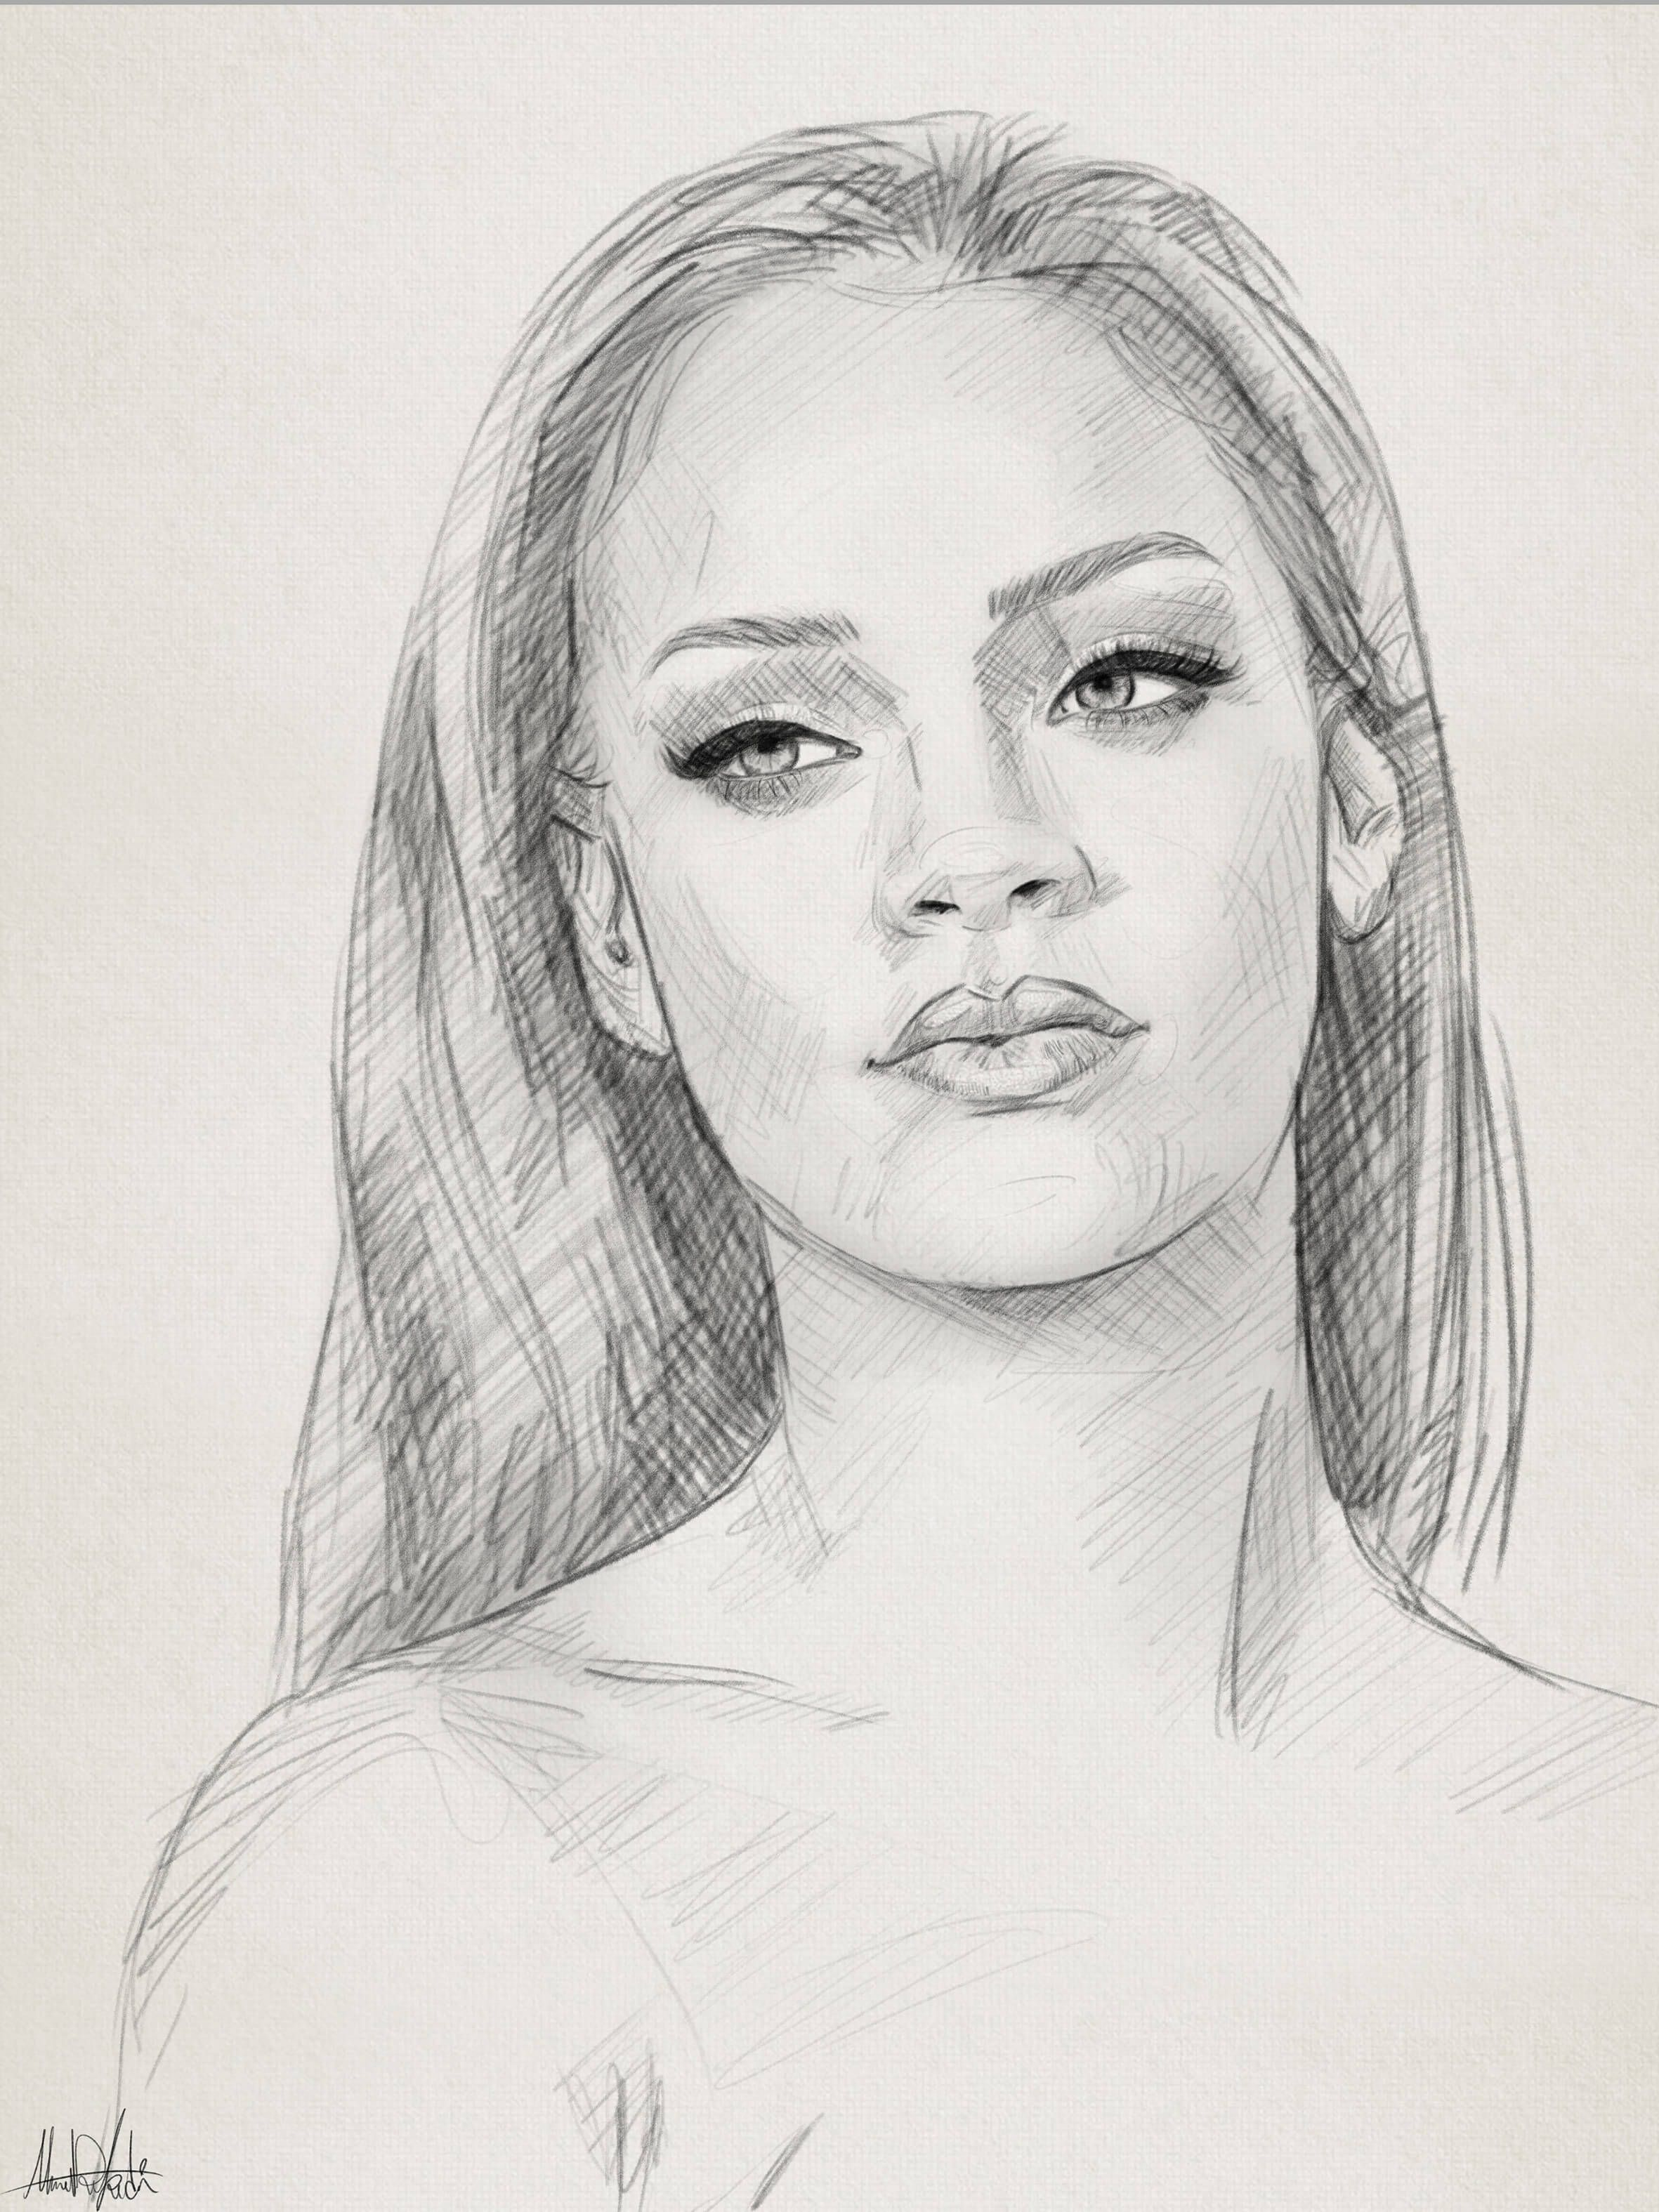 Pencil sketch drawing portrait of rihanna by ahmad kadi